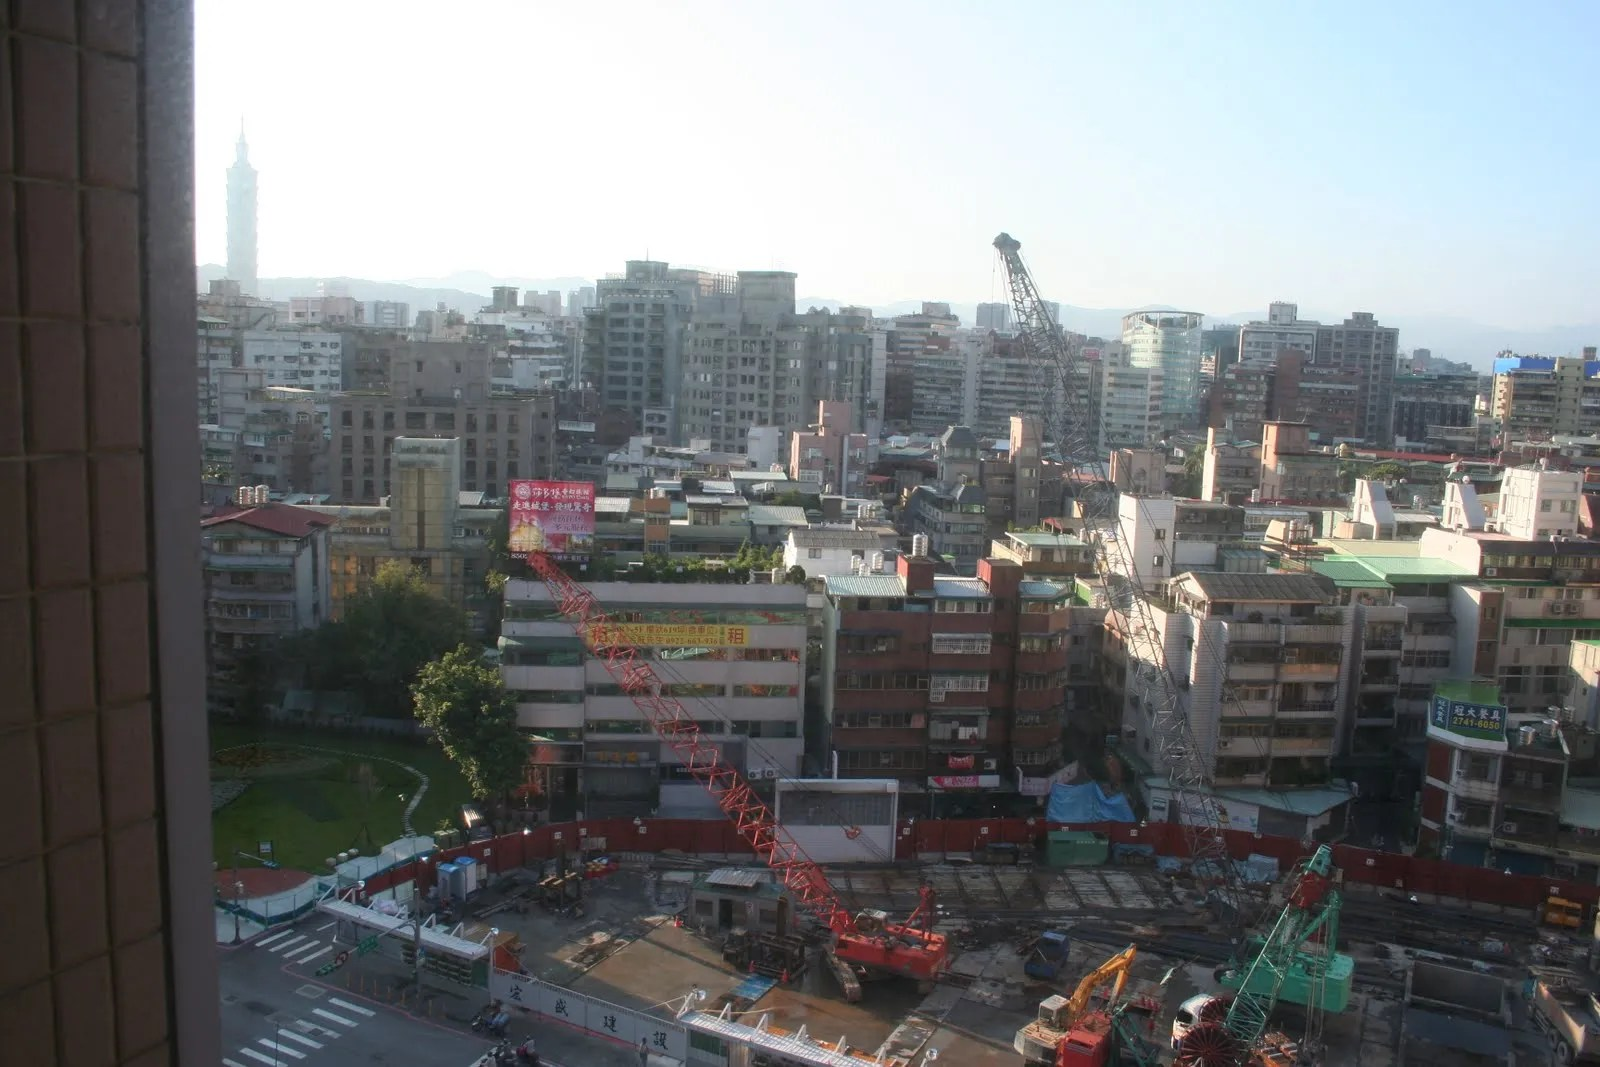 View from my hotel room. Taipei 101 in the distance.